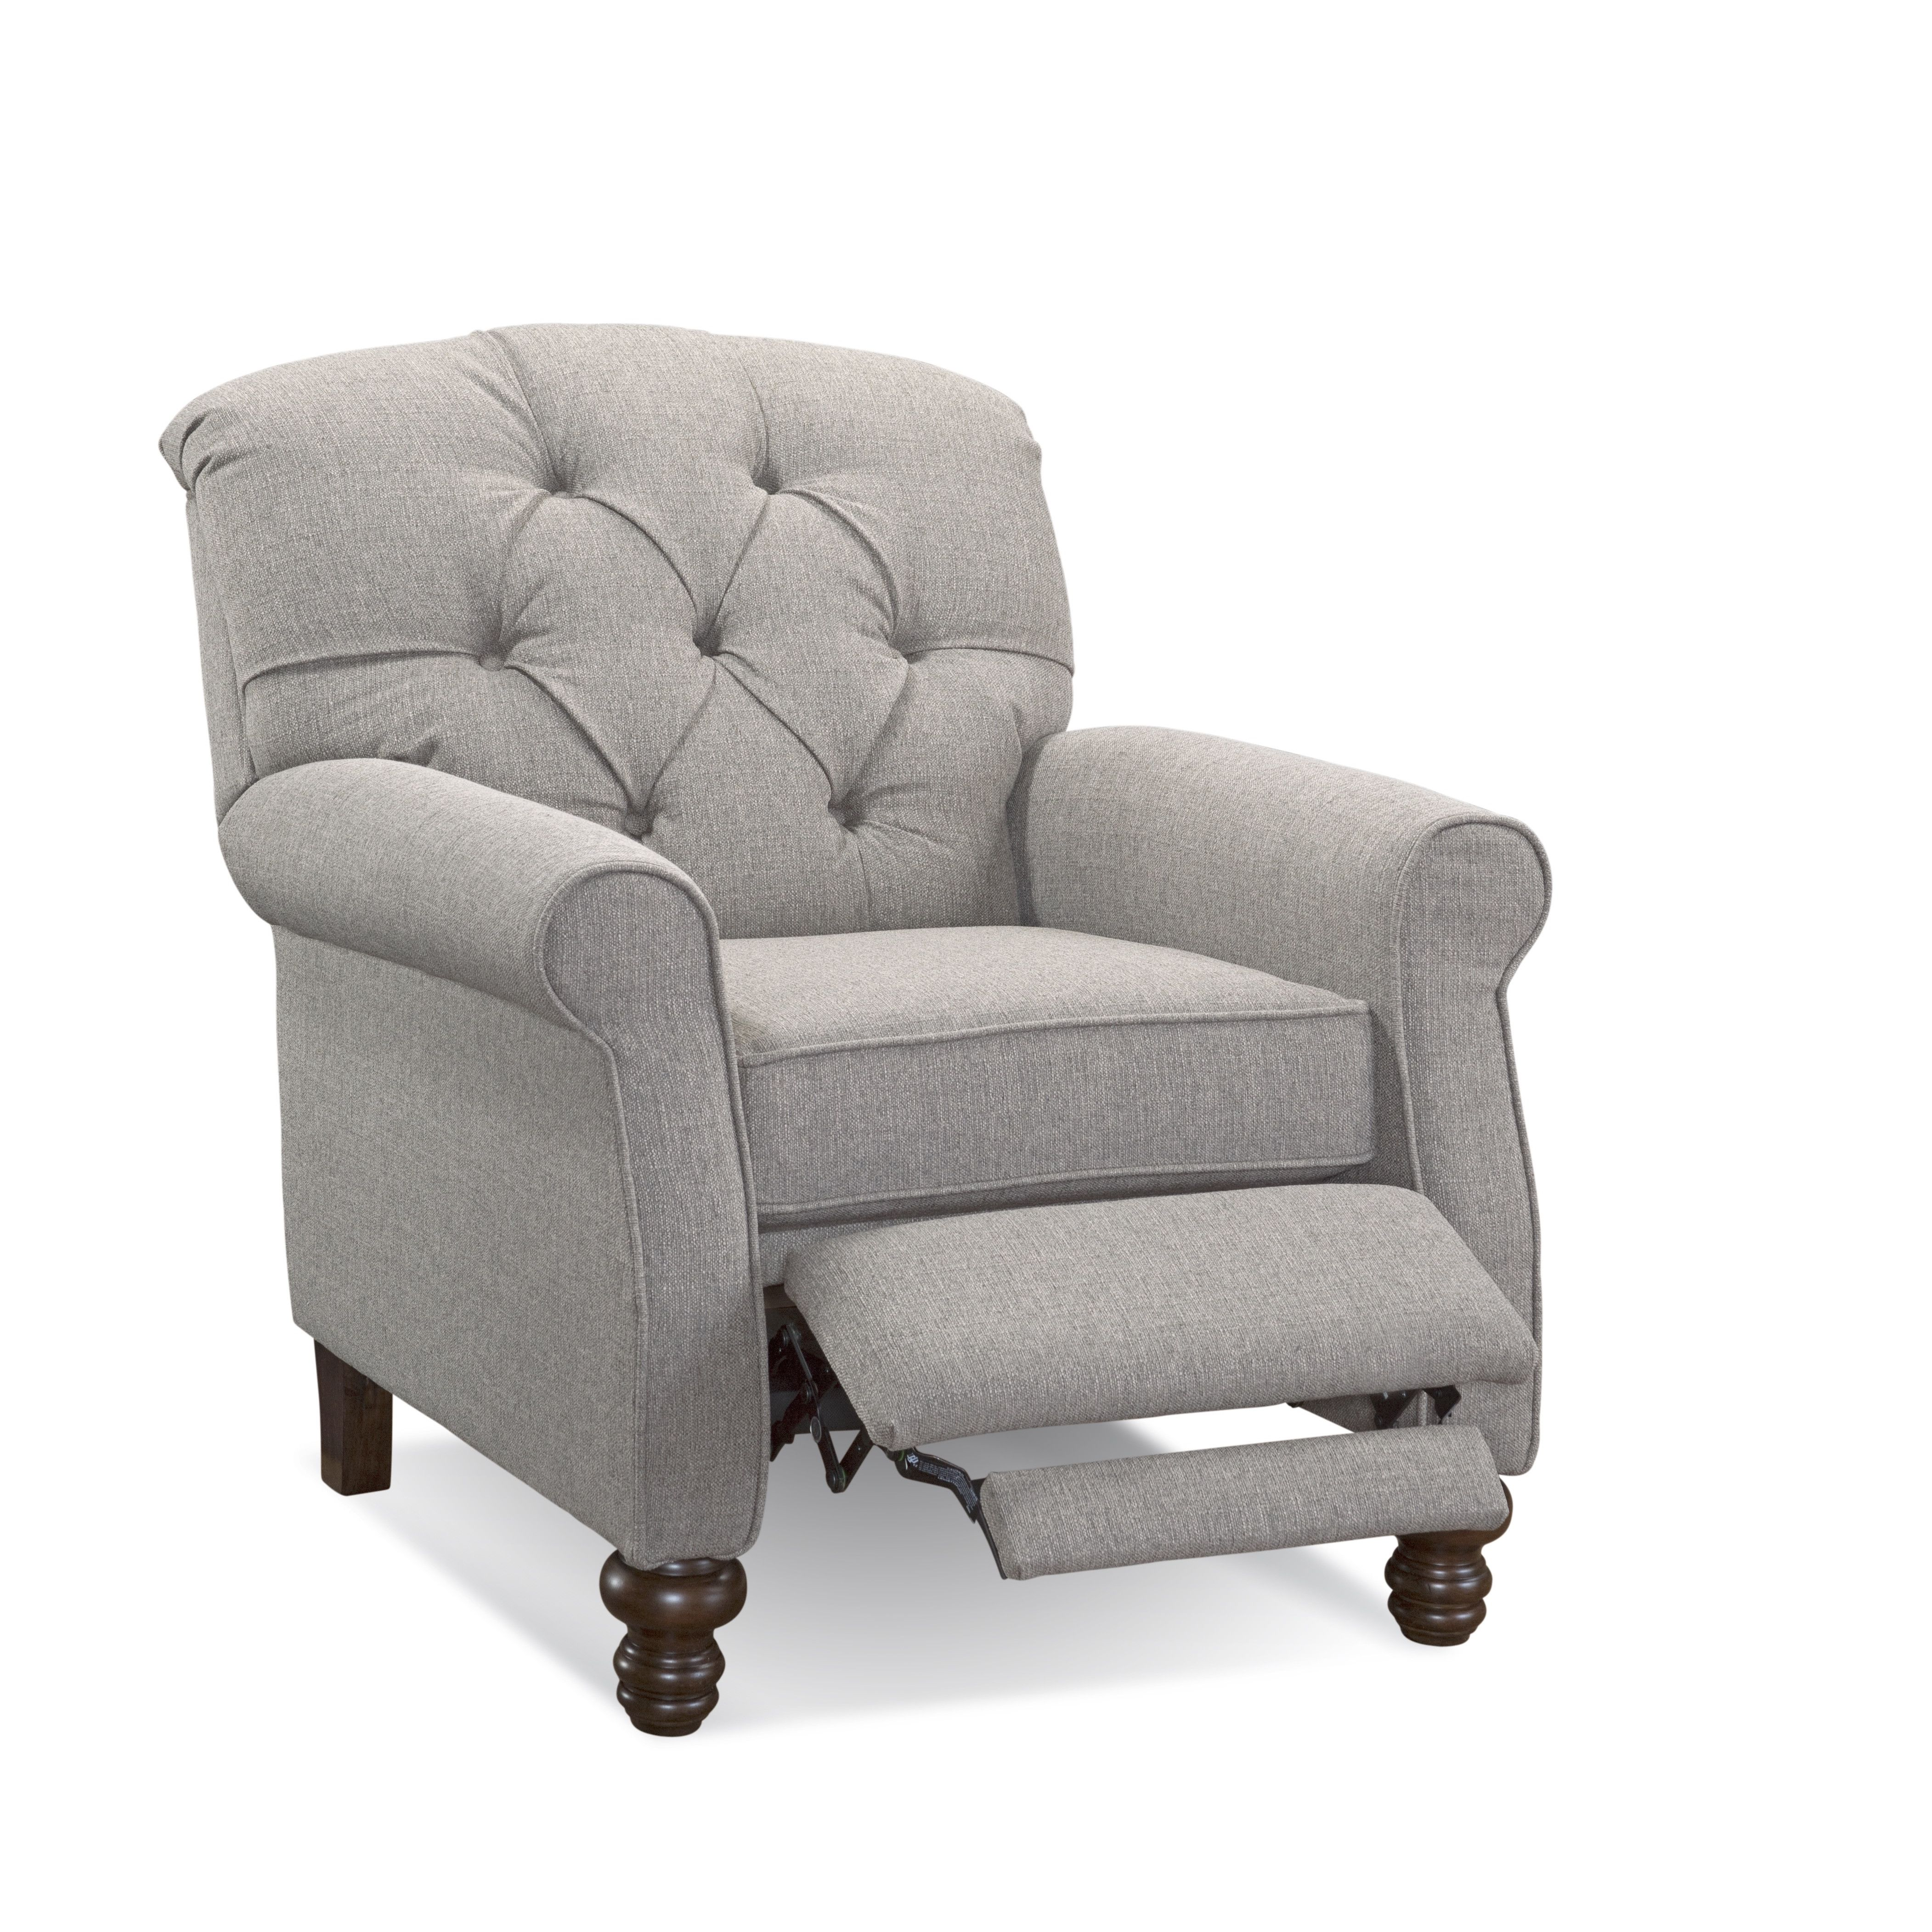 You'll love the Williamsport Recliner at Wayfair Great